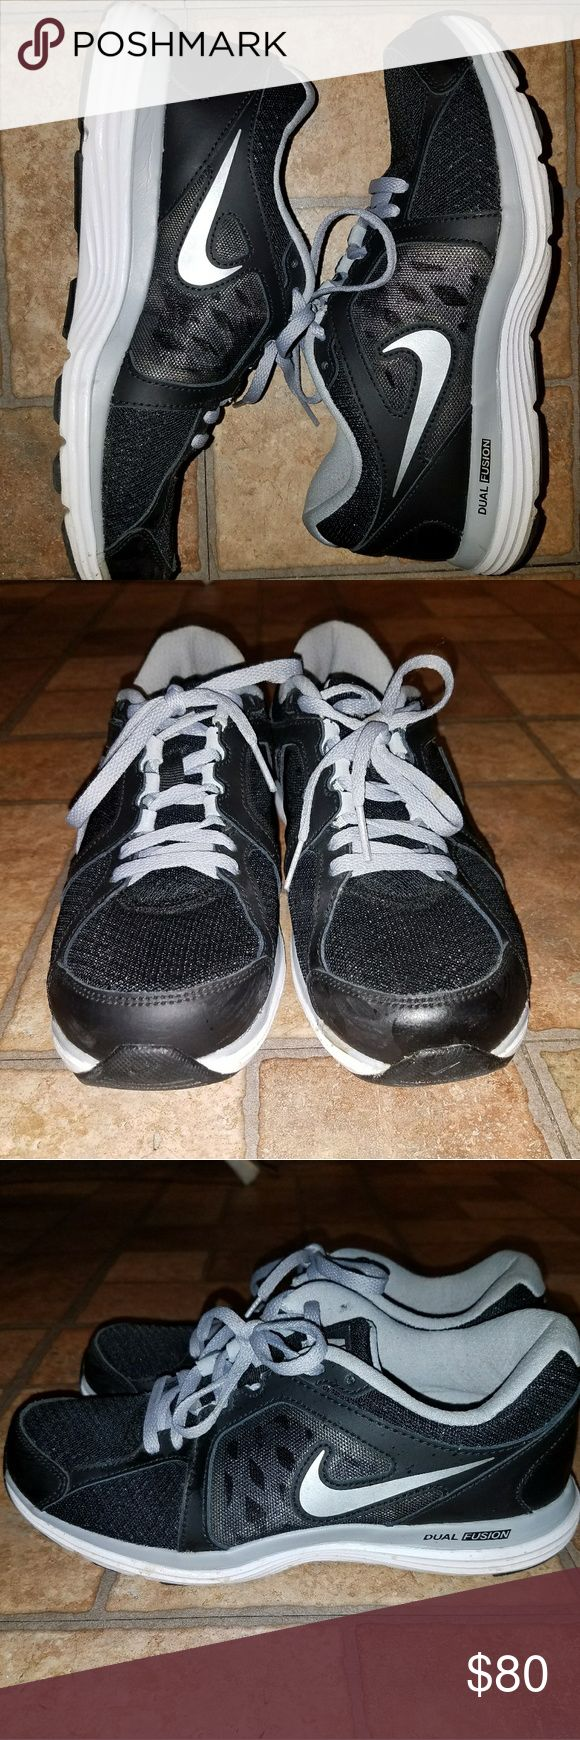 NIKE Dual Fusion Women's Shoes Brand New Condition Only Worn Twice. Black Gray And White. Nike Shoes Sneakers